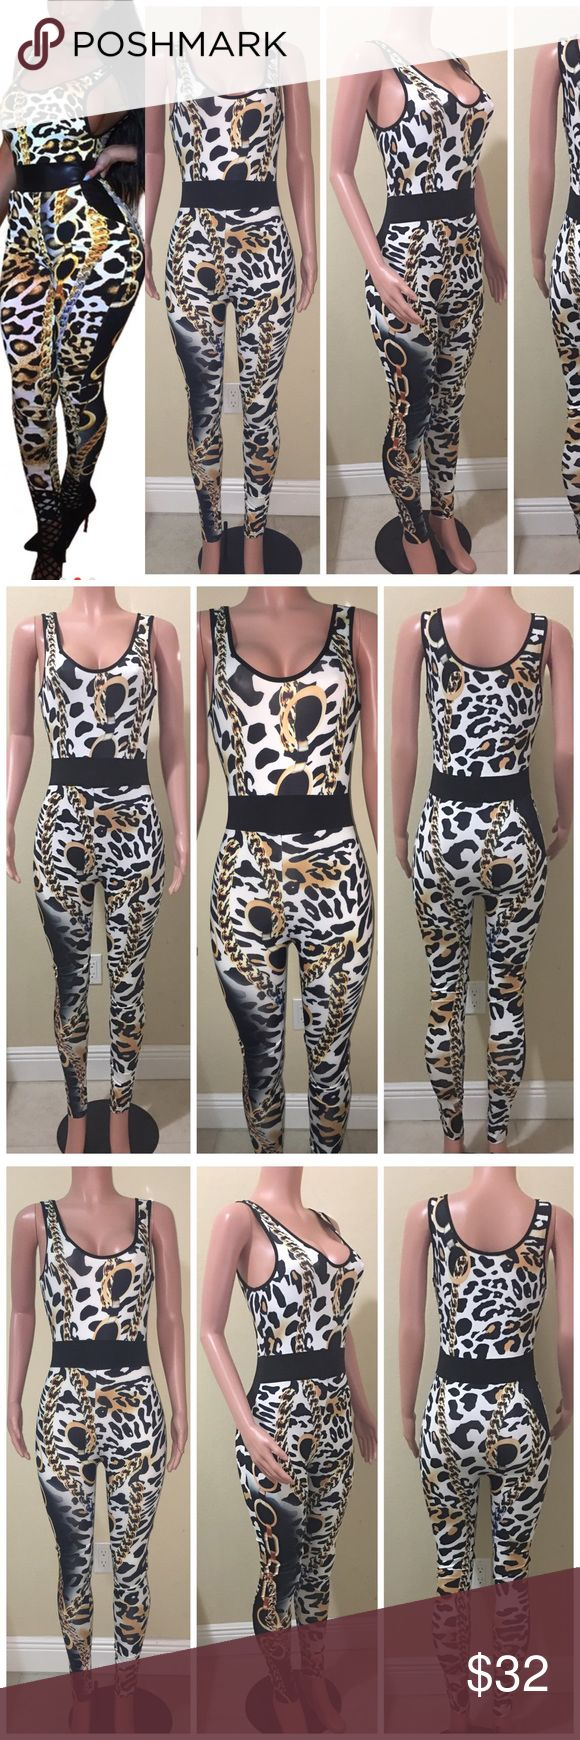 Animal print jumpsuit Animal print jumpsuit.   Size Small Pants Jumpsuits & Rompers